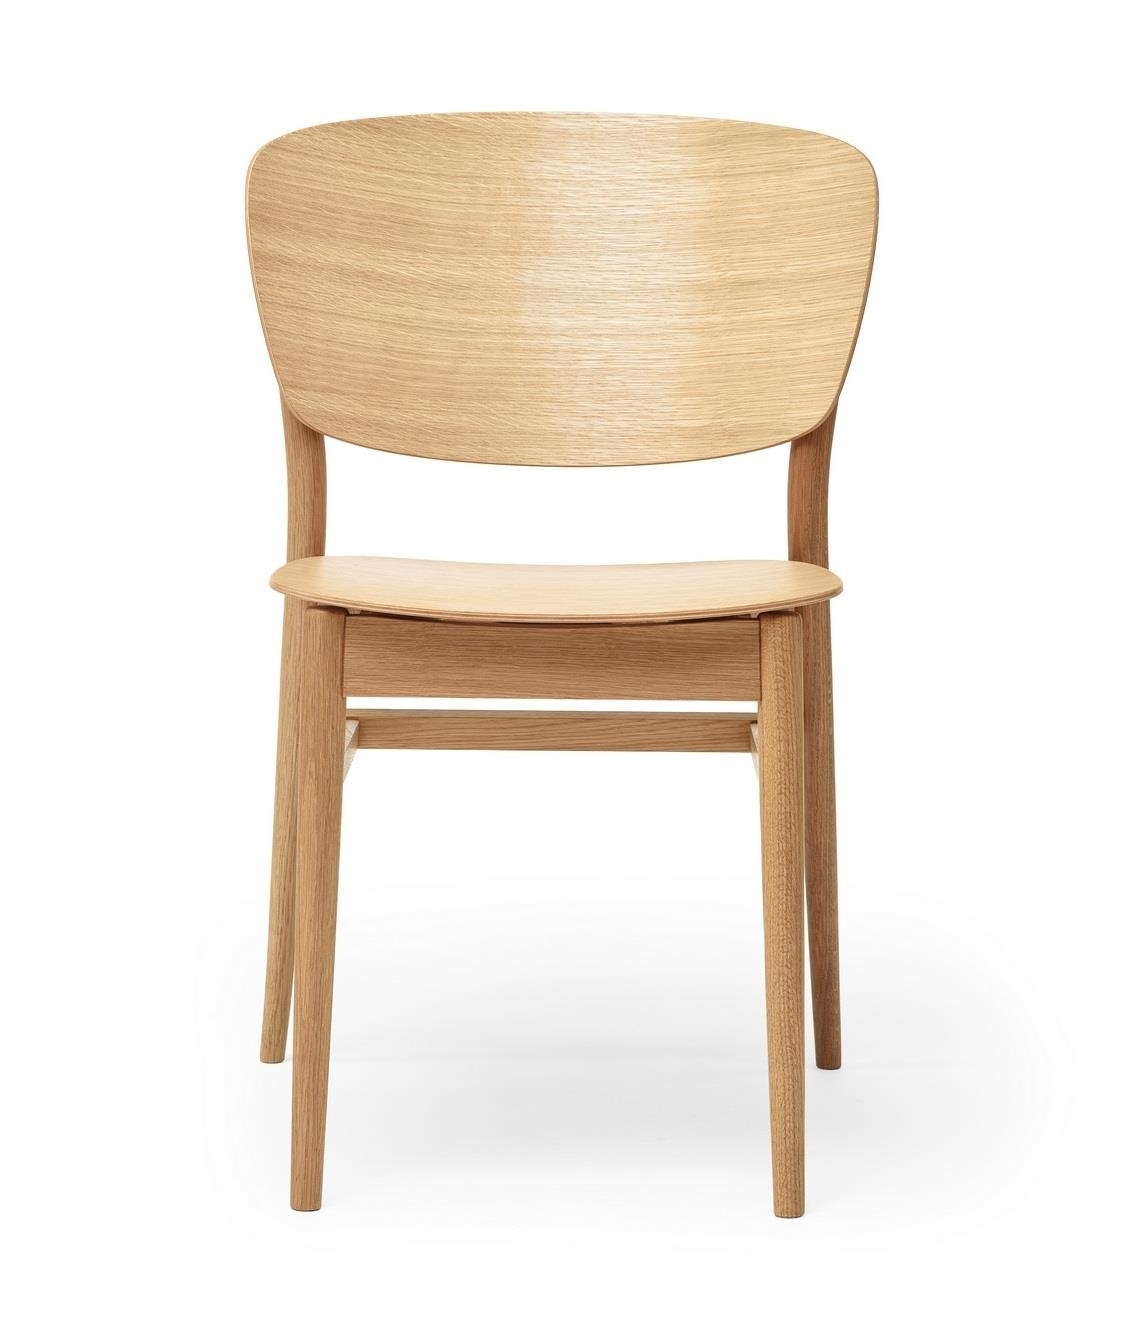 Valencia Side Chairs Pertaining To Widely Used Valencia Side Chair, Wooden – Telegraph Contract Furniture (View 11 of 20)